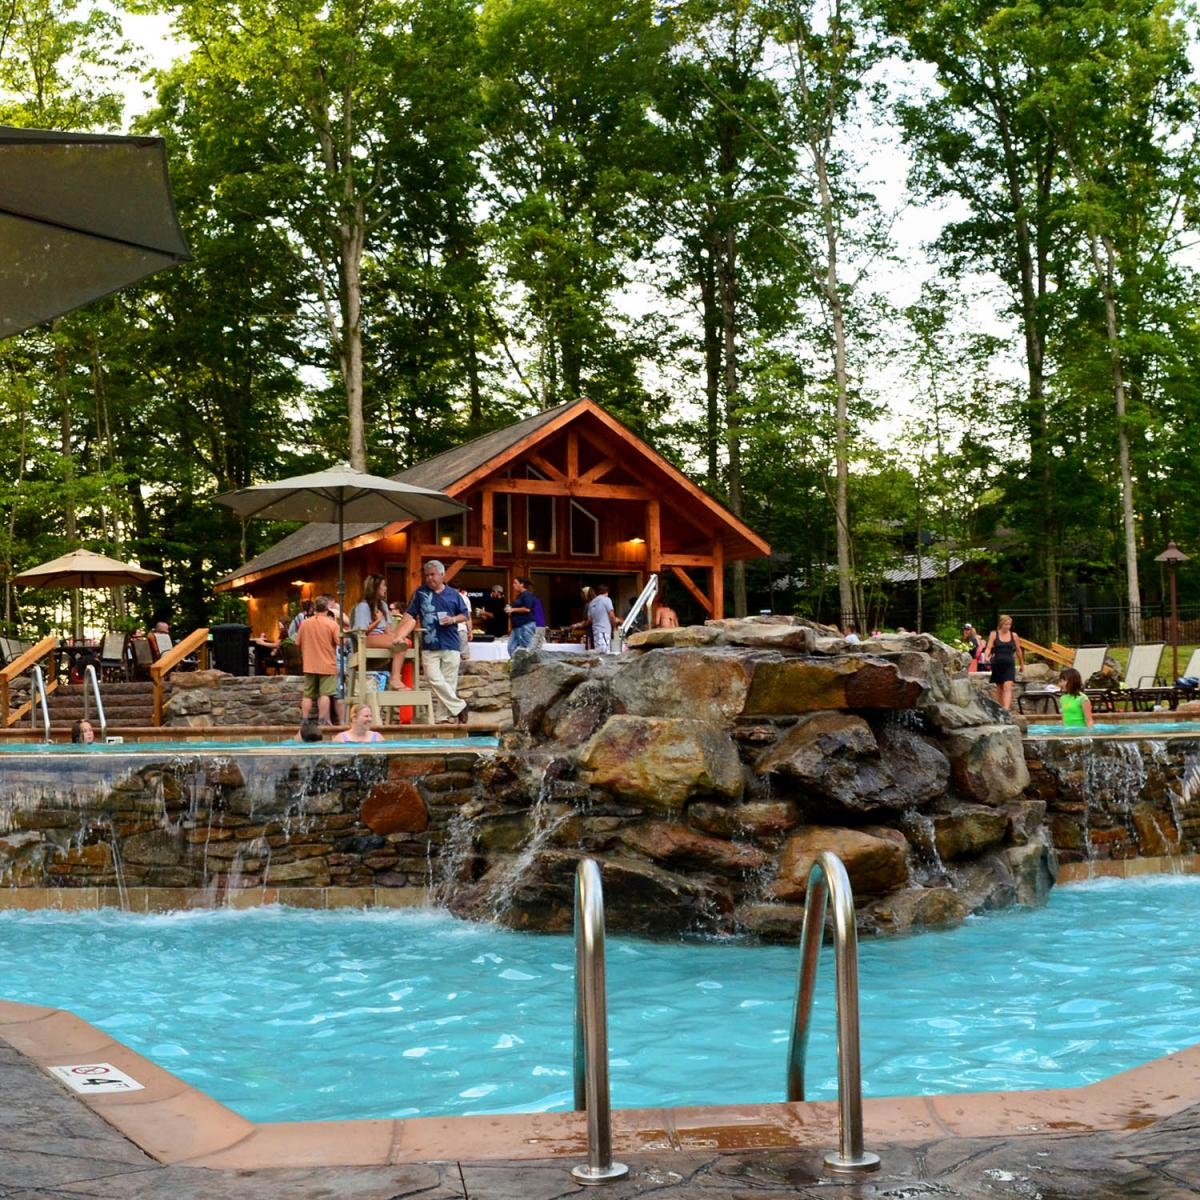 The pool at Adventures on the Gorge